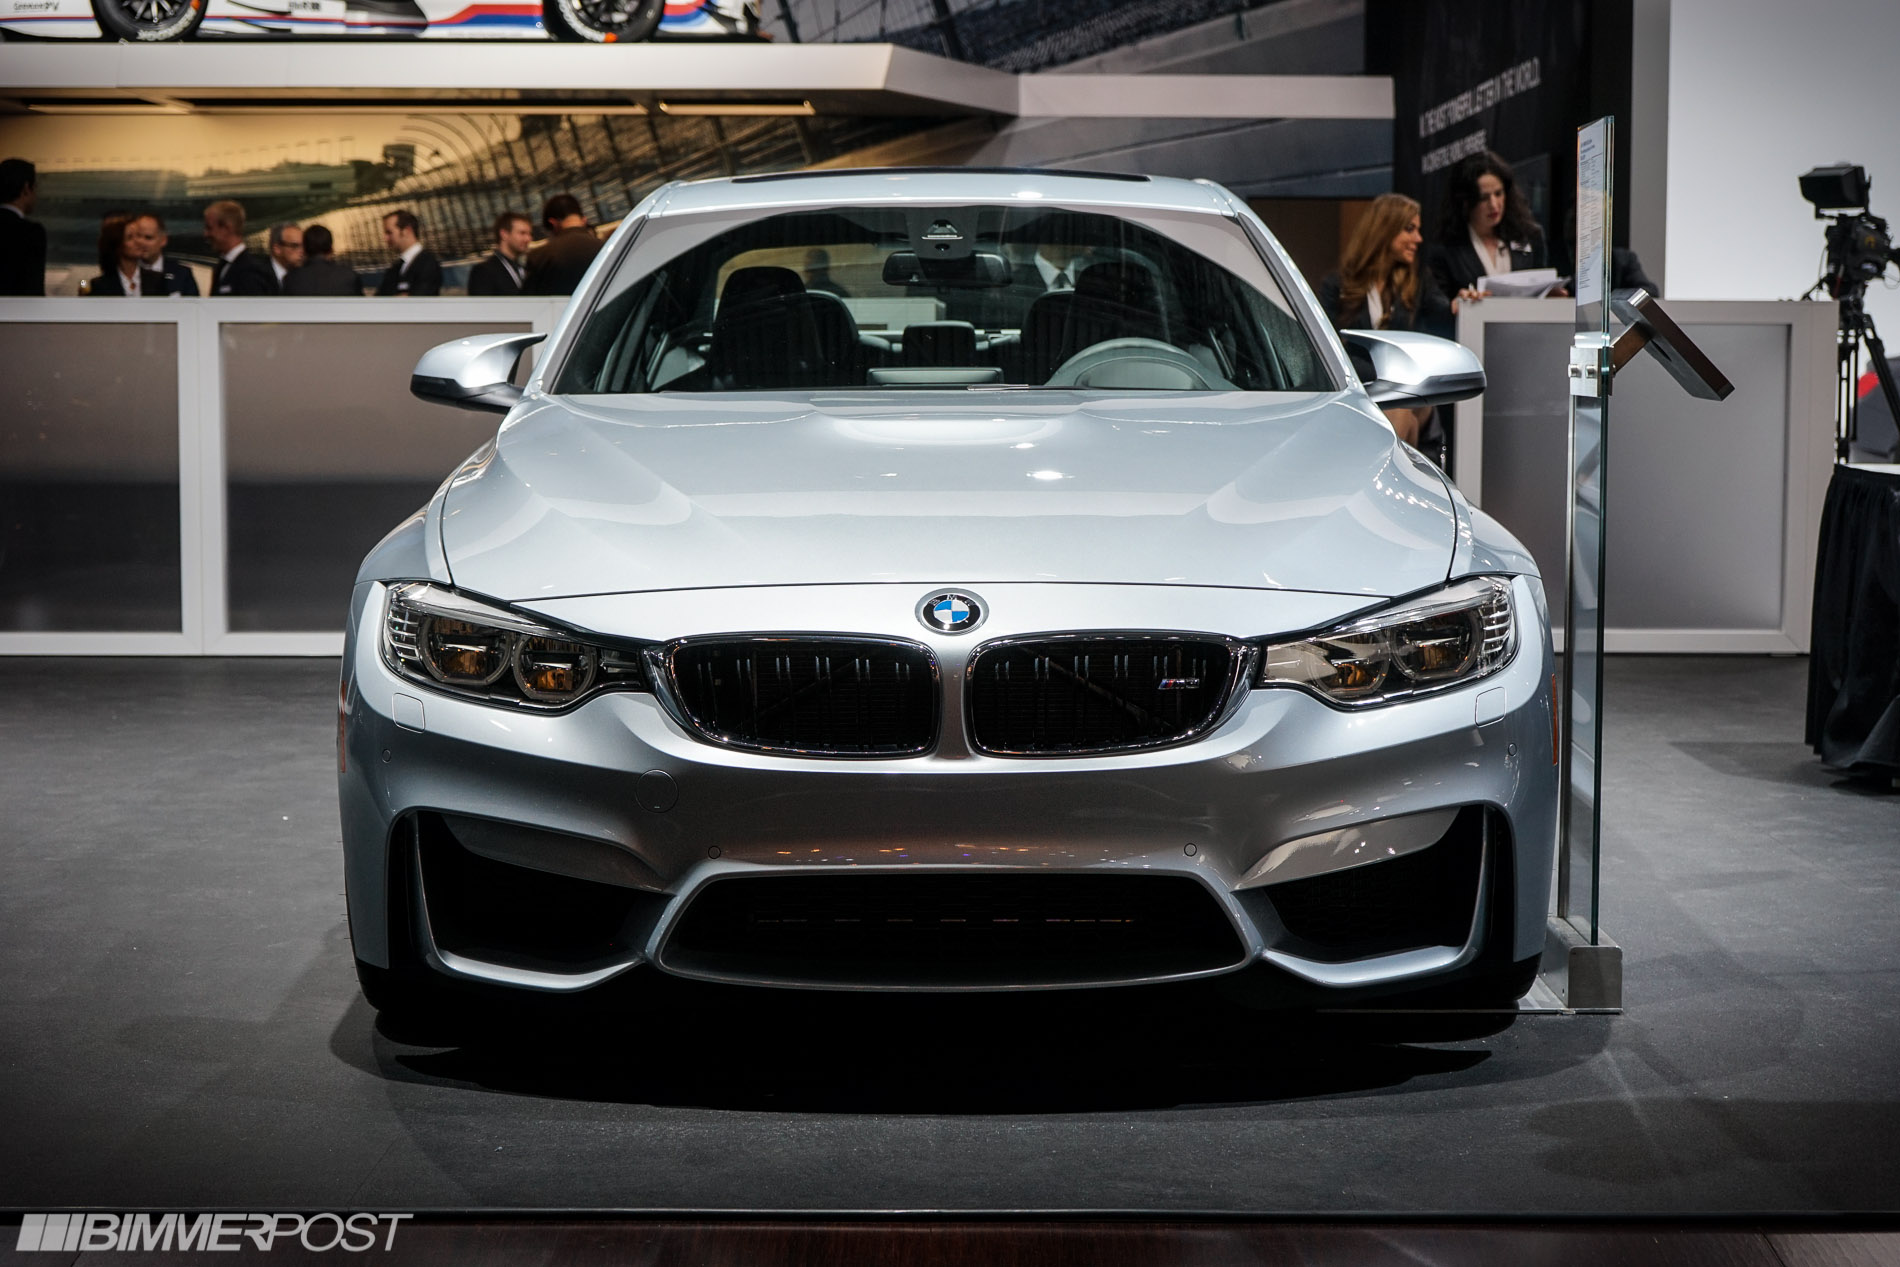 2014 Nyias Bmw M3 F80 In Silverstone Ii Page 4